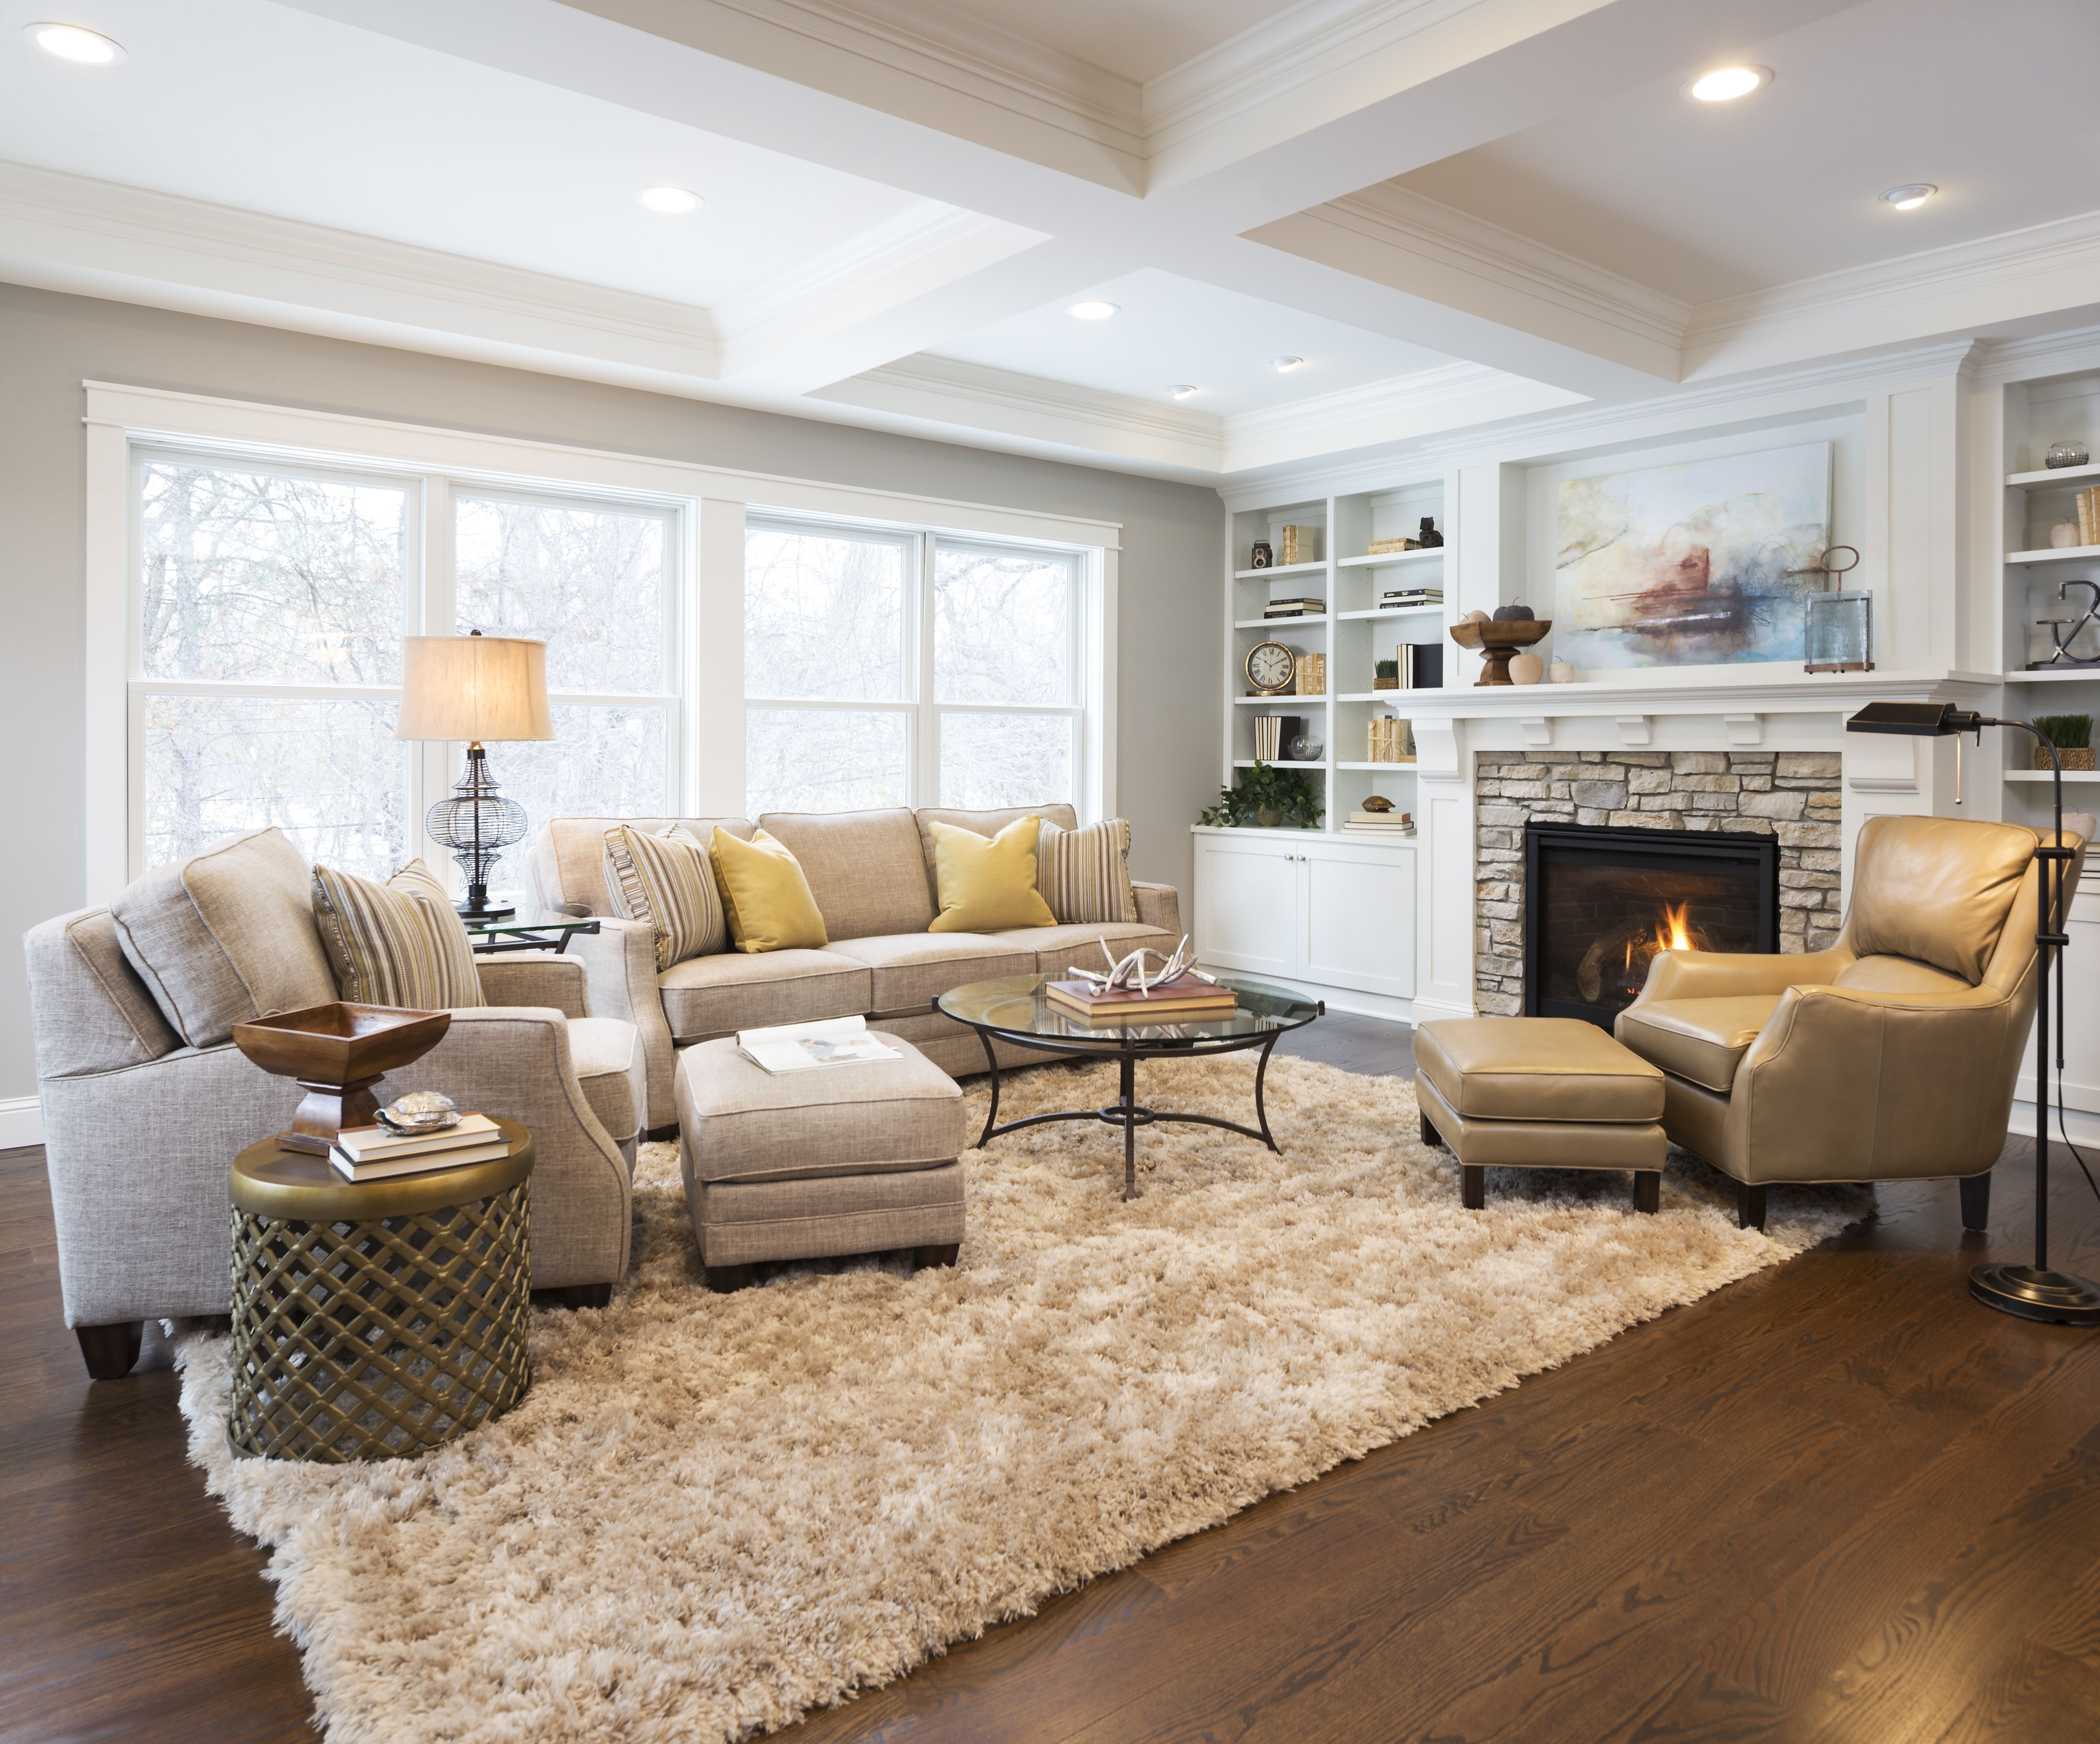 Furniture Really Down To Earth Thoughts To Generate More Delight Furniture Tip Example 4198 In 2020 Livingroom Layout Living Room Arrangements Farm House Living Room